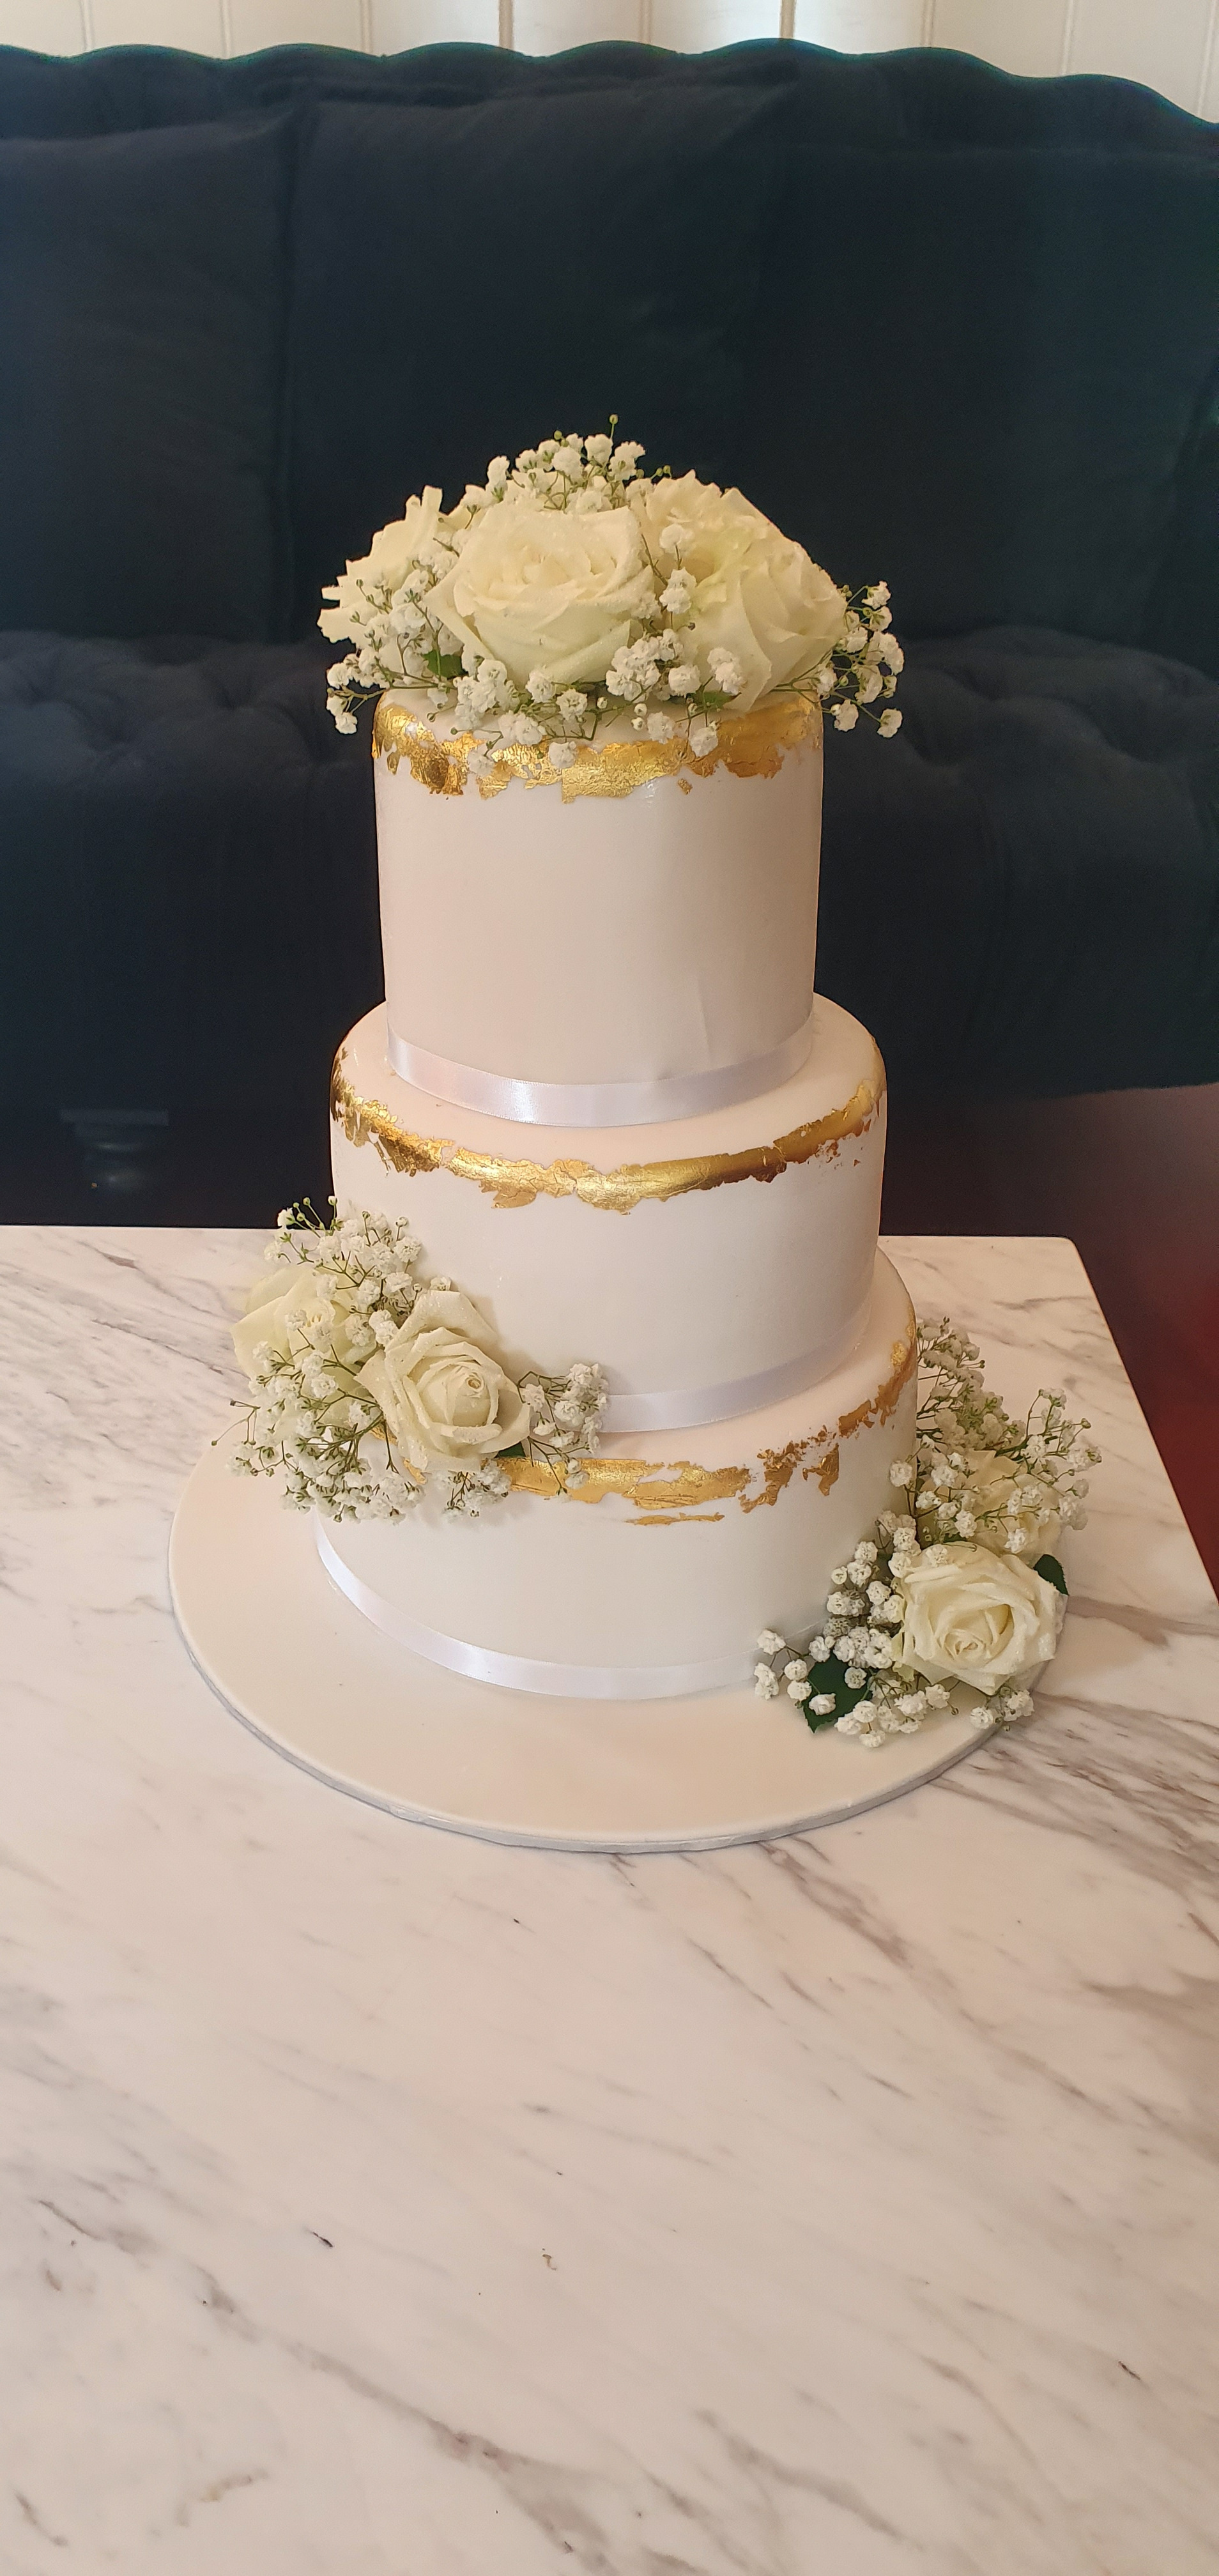 3 tier white fondant cake with gold accent from $650